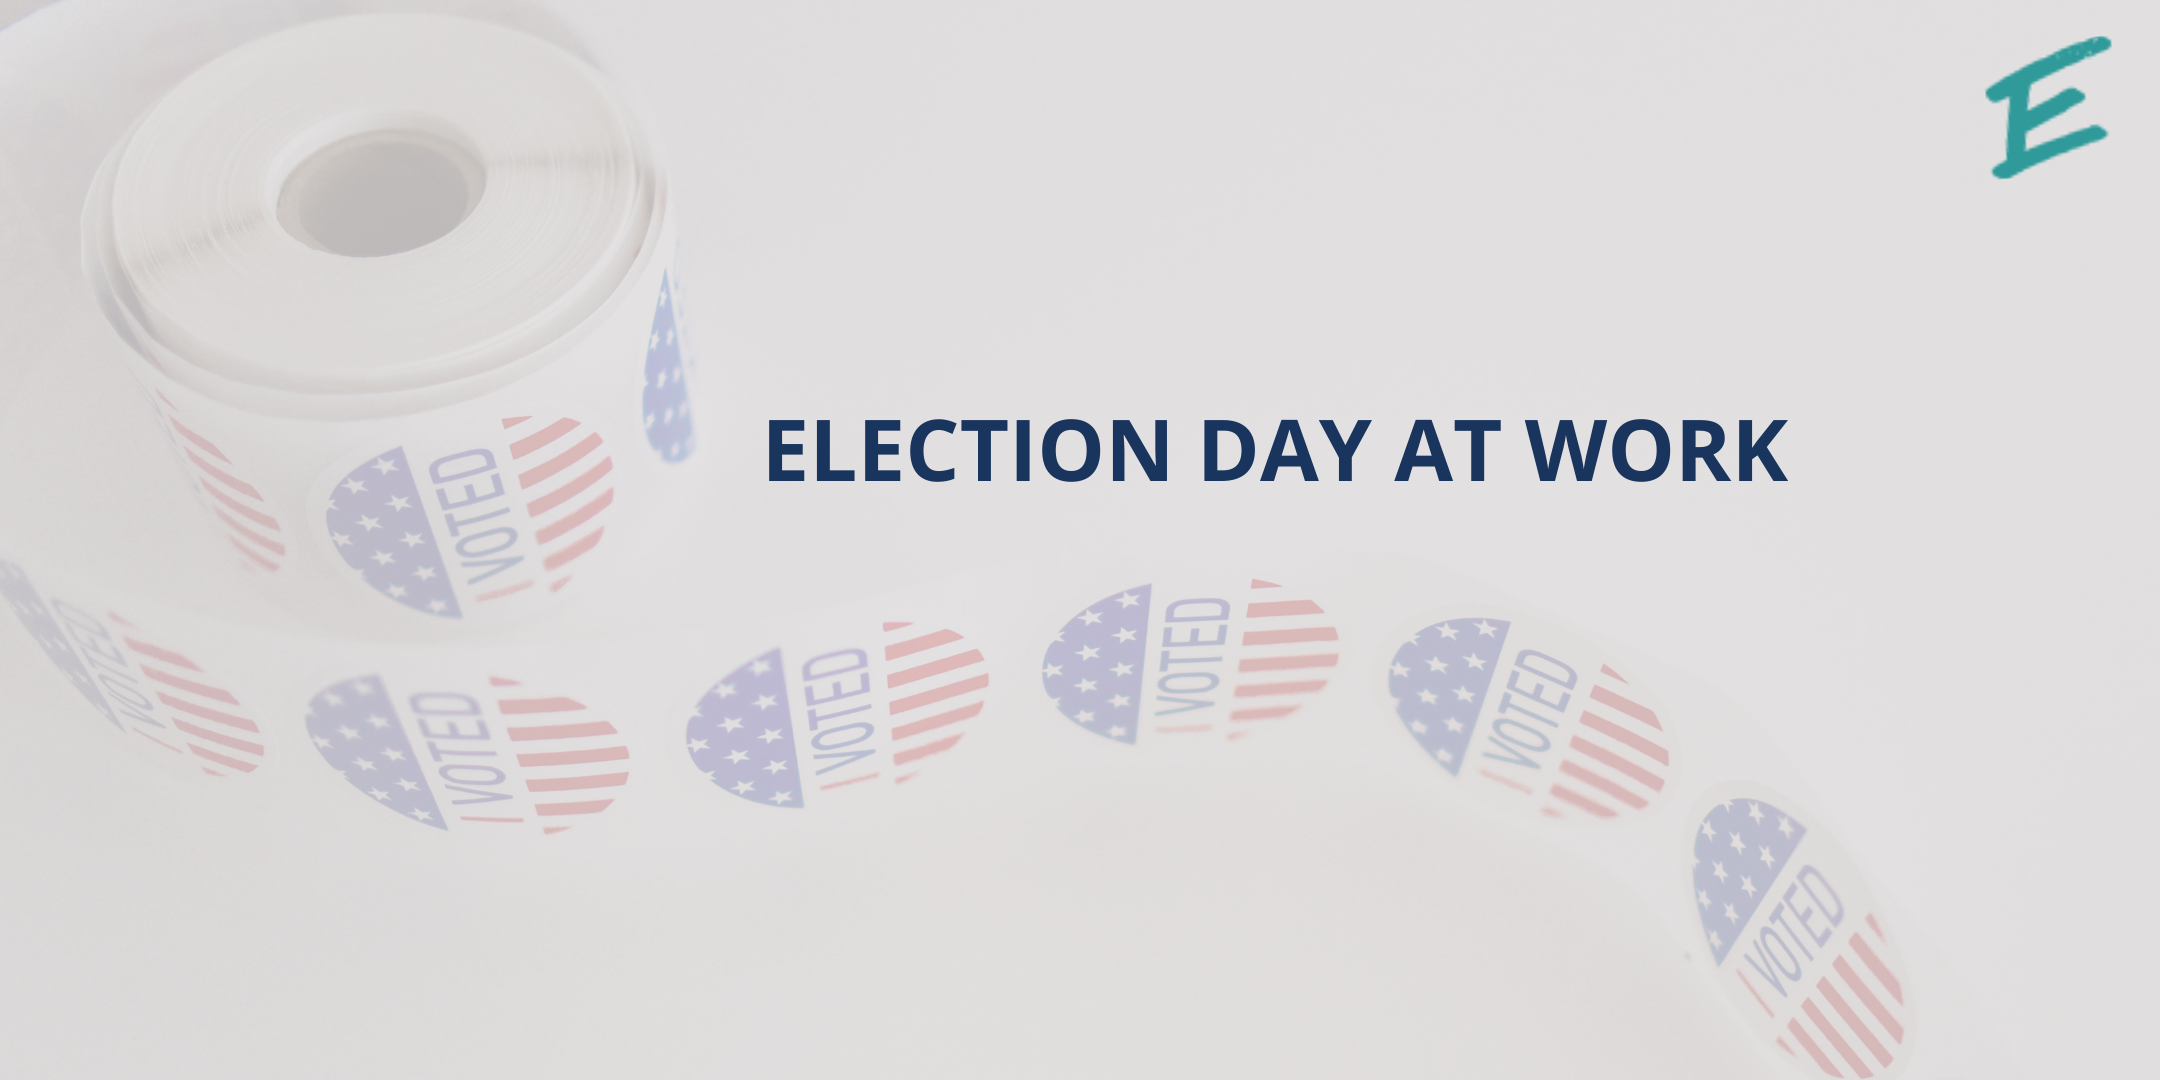 election-day-at-work